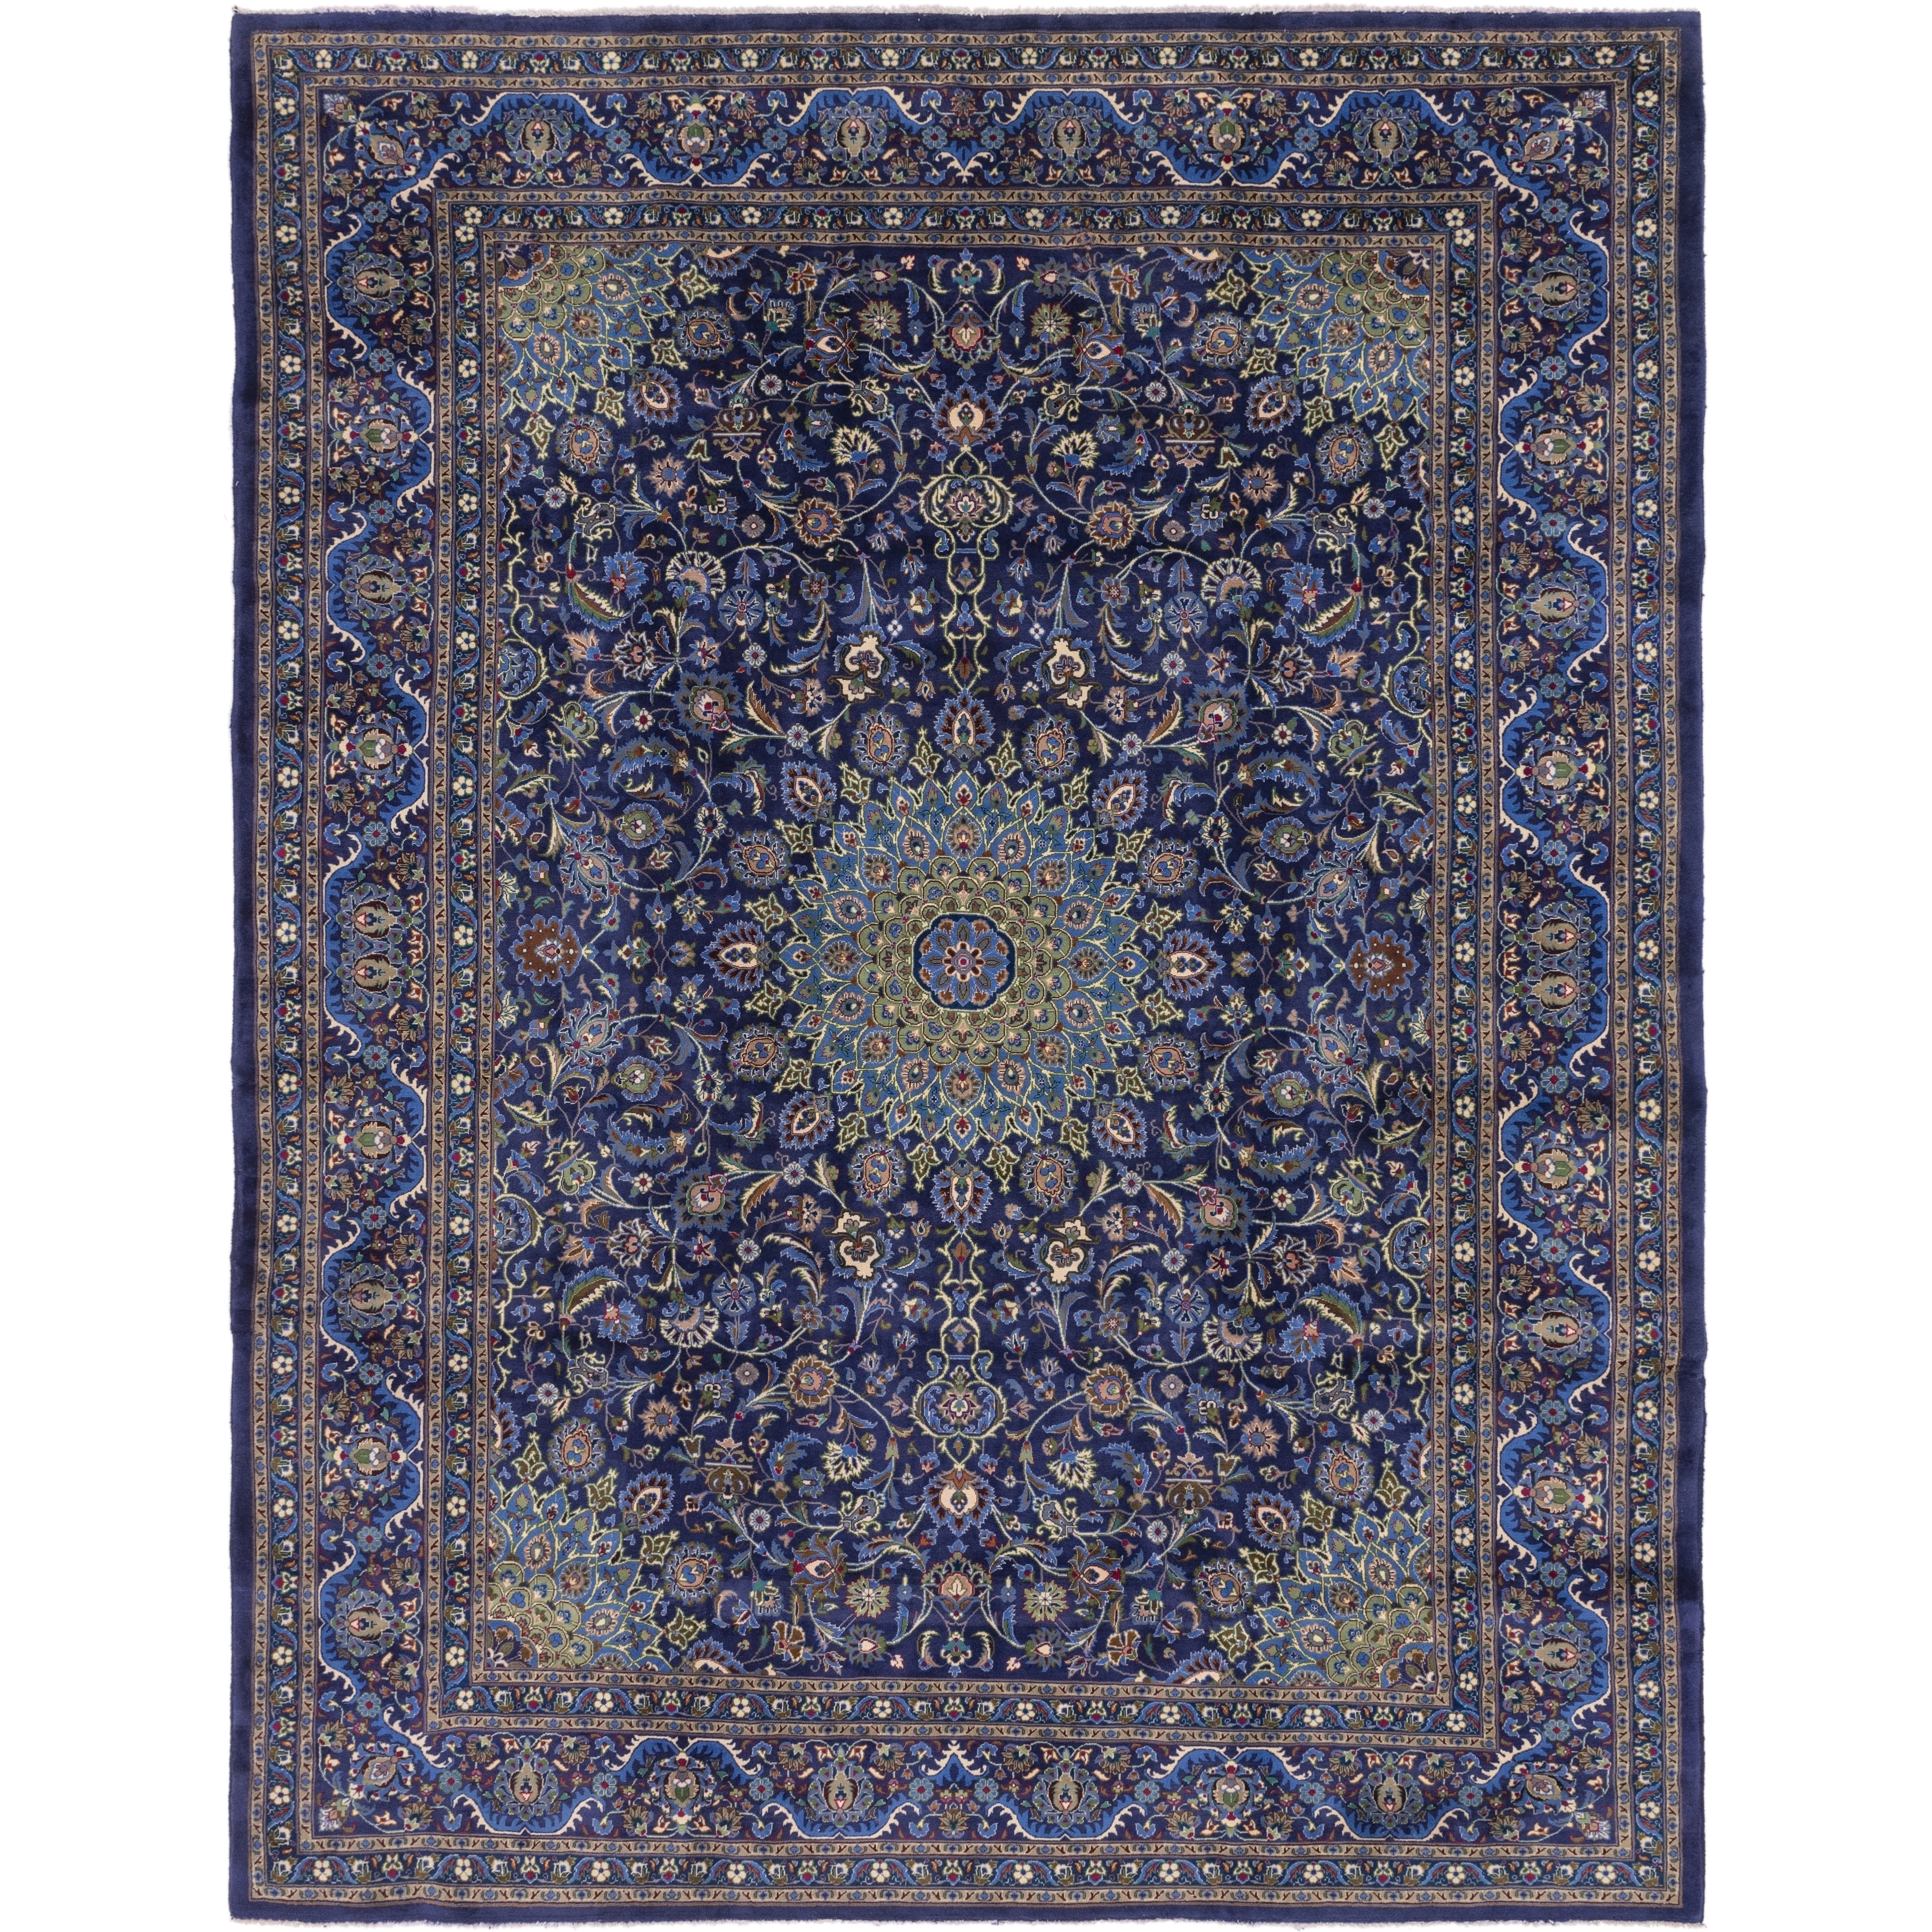 Hand Knotted Kashmar Semi Antique Wool Round Rug - 10 x 13 (Navy blue - 10 x 13)